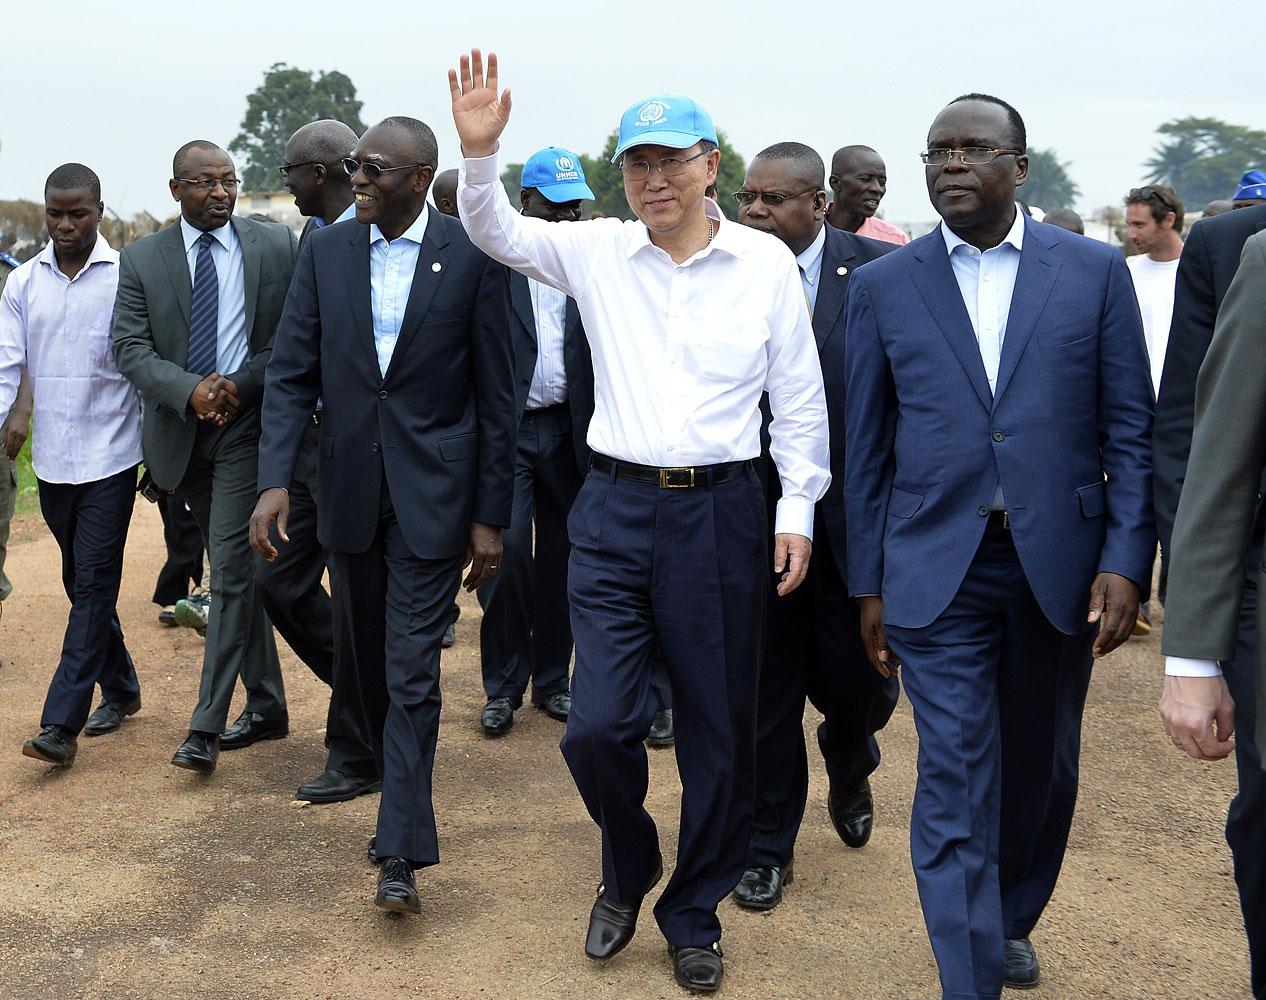 U.N. Secretary-General Ban Ki-moon waves as he visits a camp for internally displaced persons in the Central African Republic on April 5, 2014